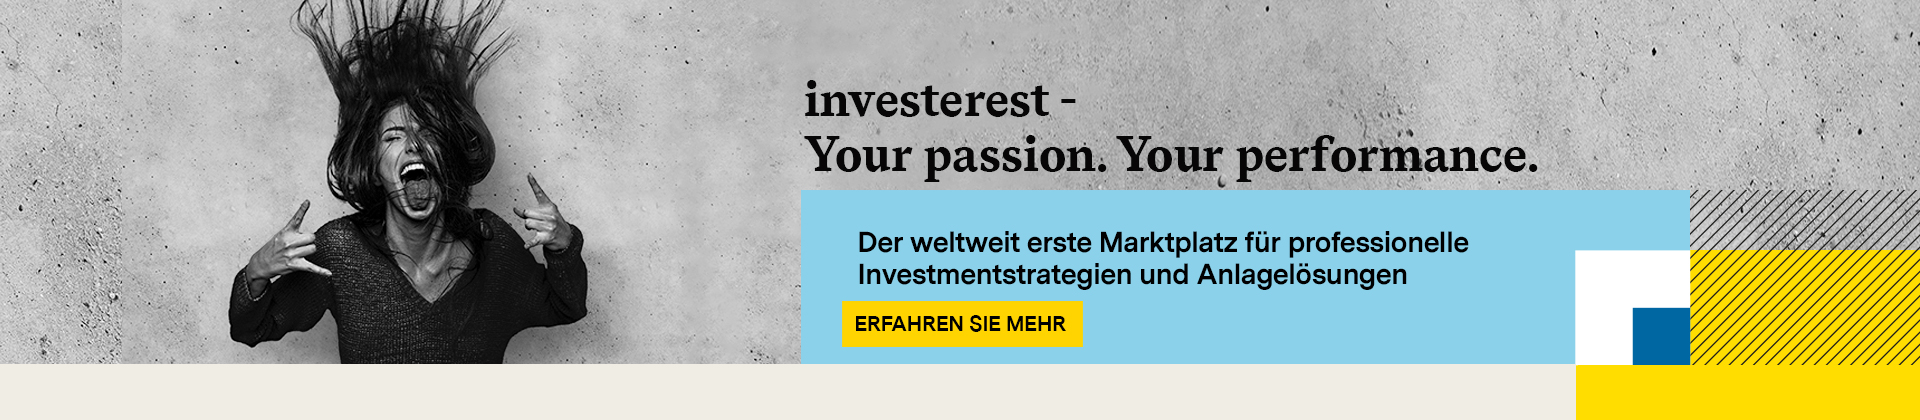 investerest - Your passion. Your performance